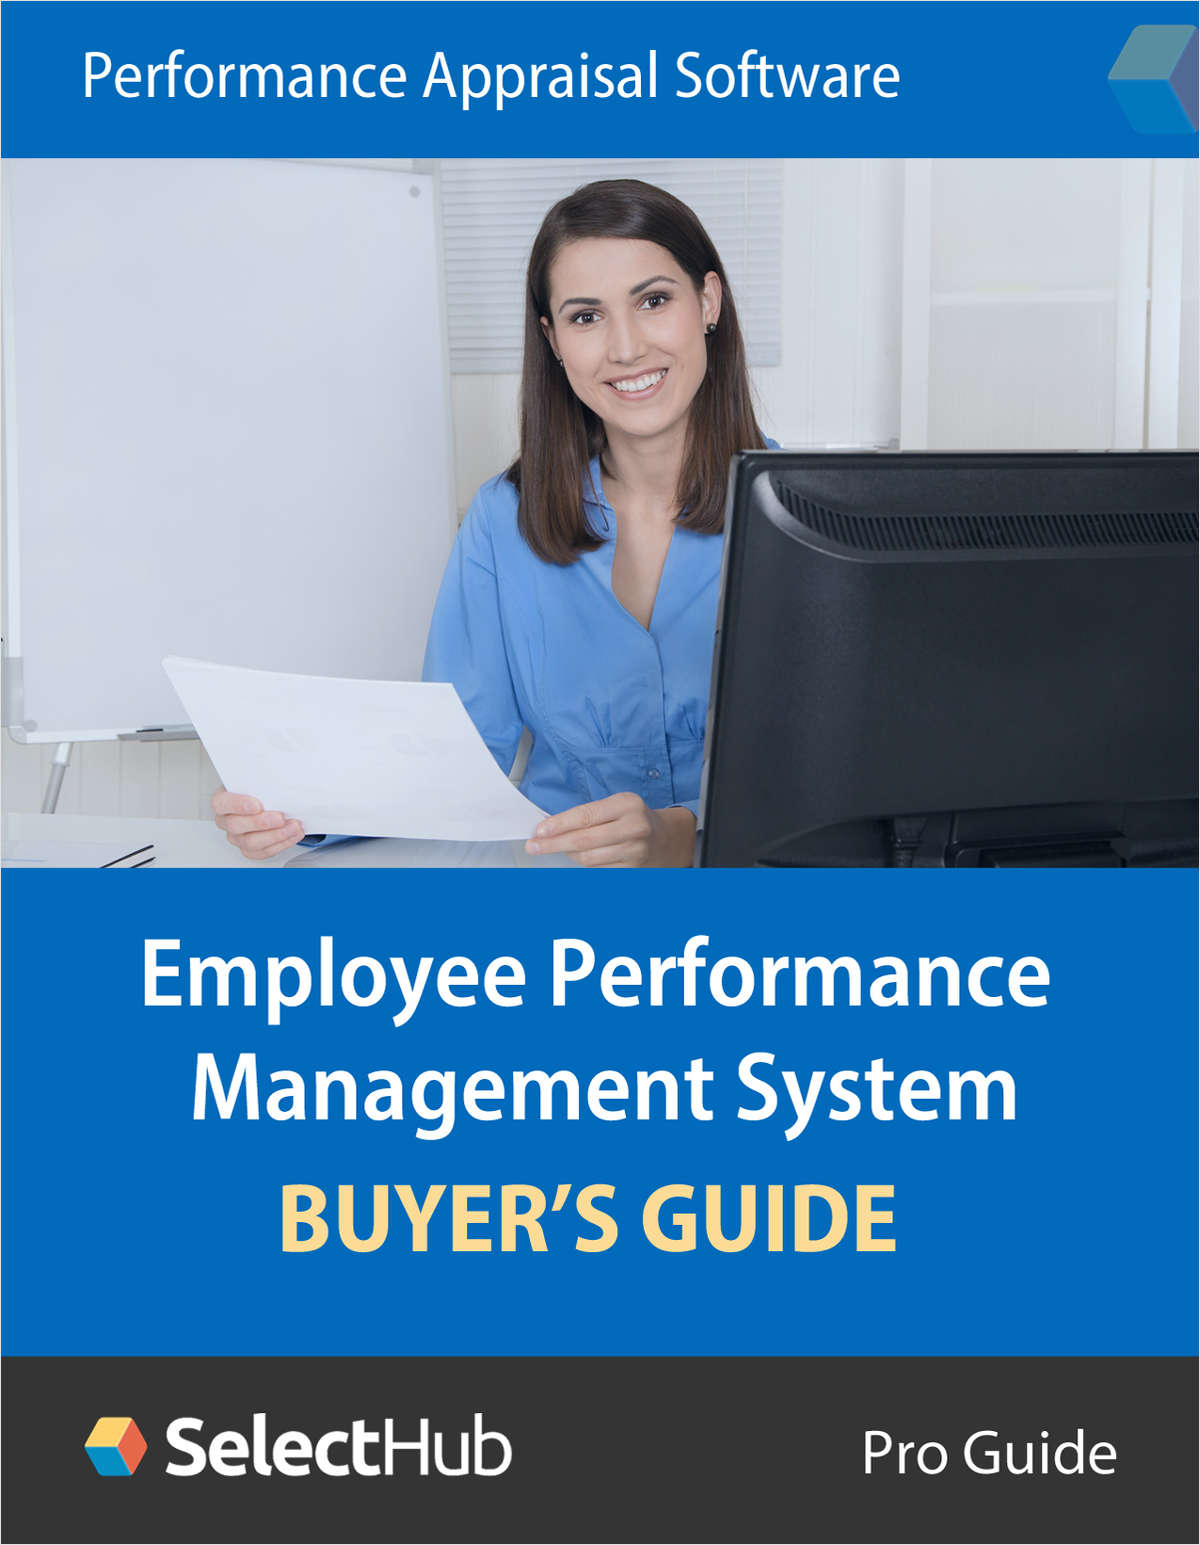 Employee Performance Management Systems: Buyer's Guide 2021